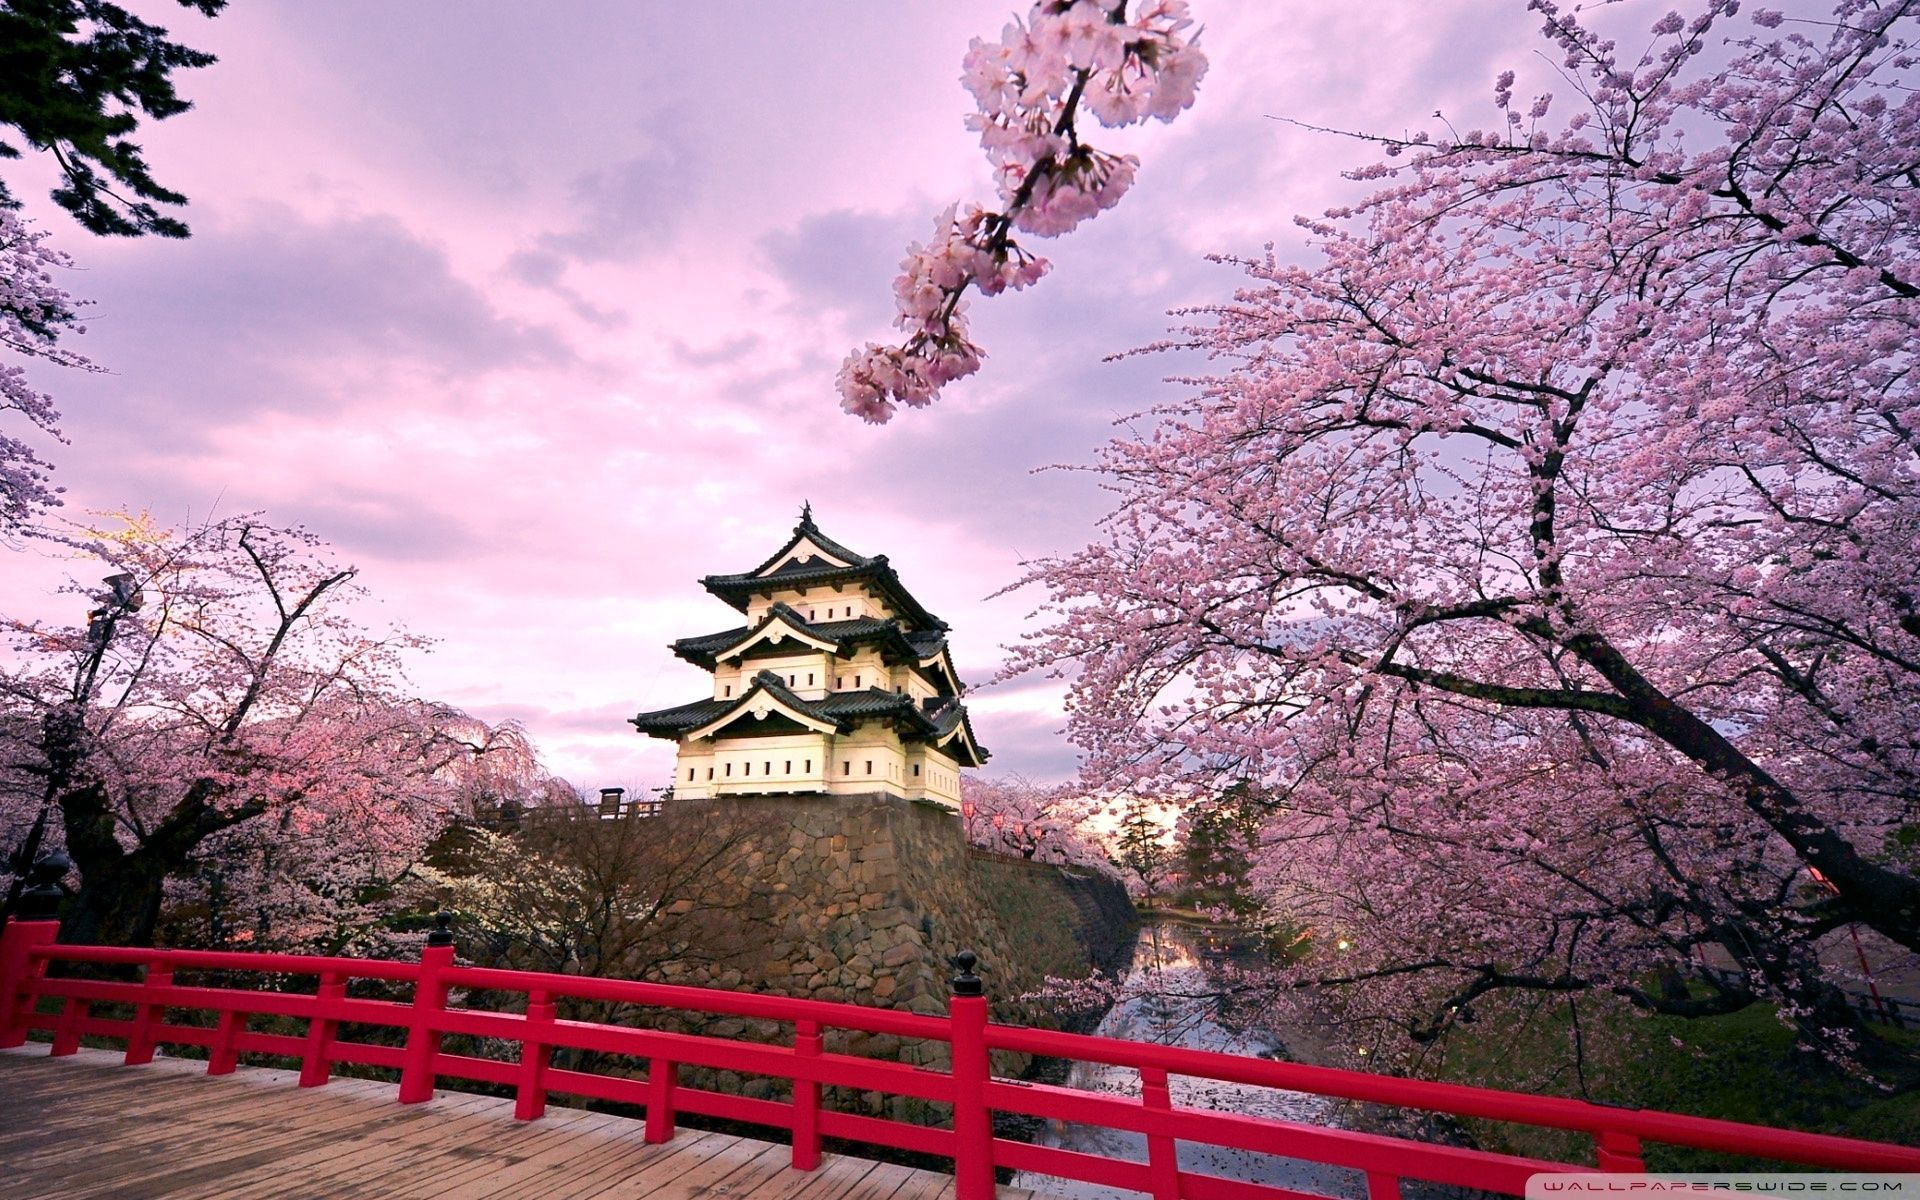 10 Best Cherry Blossom Japan Wallpaper Full Hd 1920 1080 For Pc